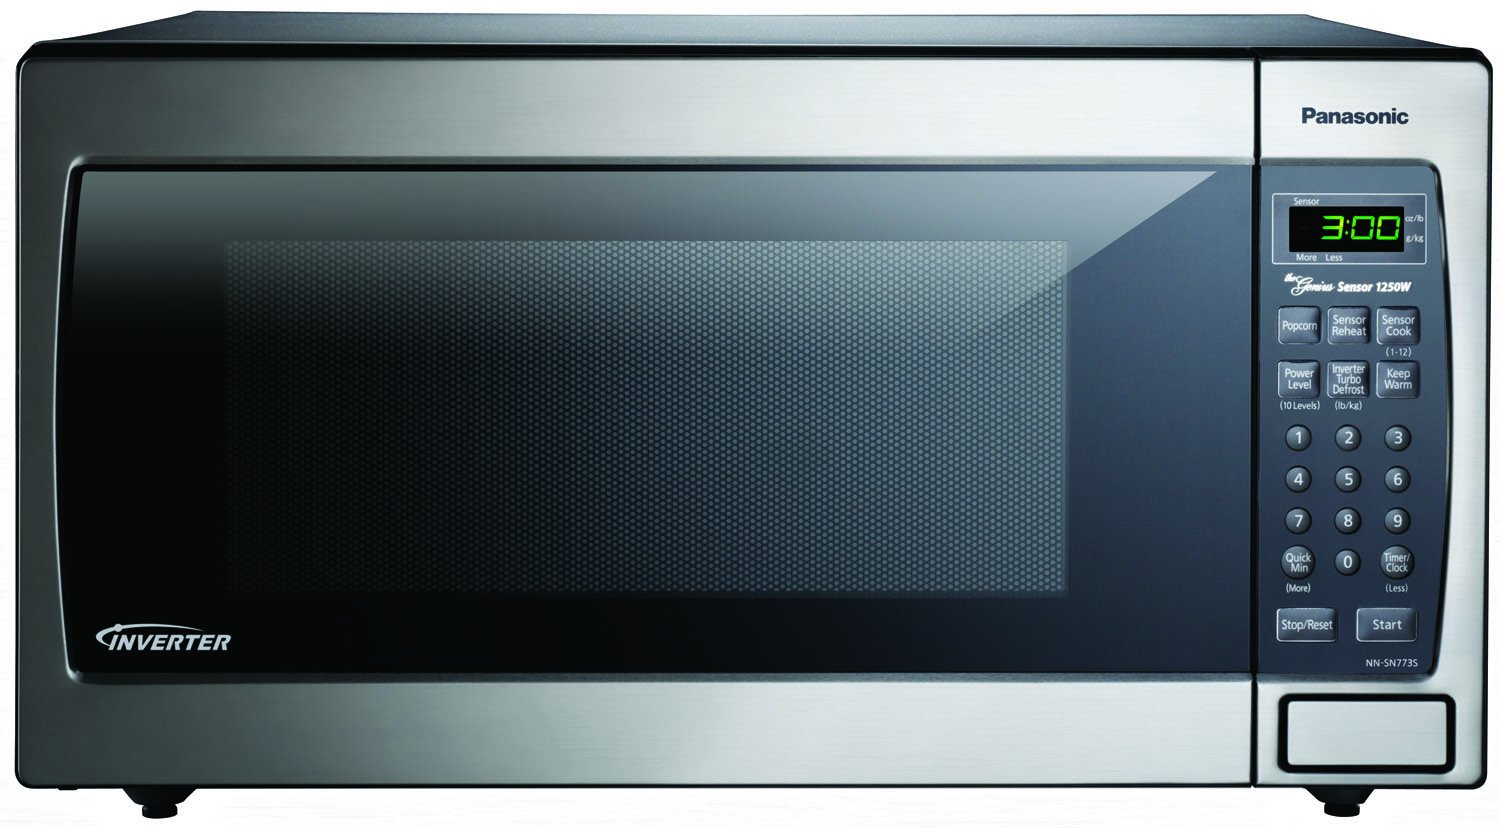 Panasonic NN-SN773SAZ Stainless 1.6 Cu. Ft. Countertop Built-In Microwave with Inverter Technology, Stainless Steel/Silver